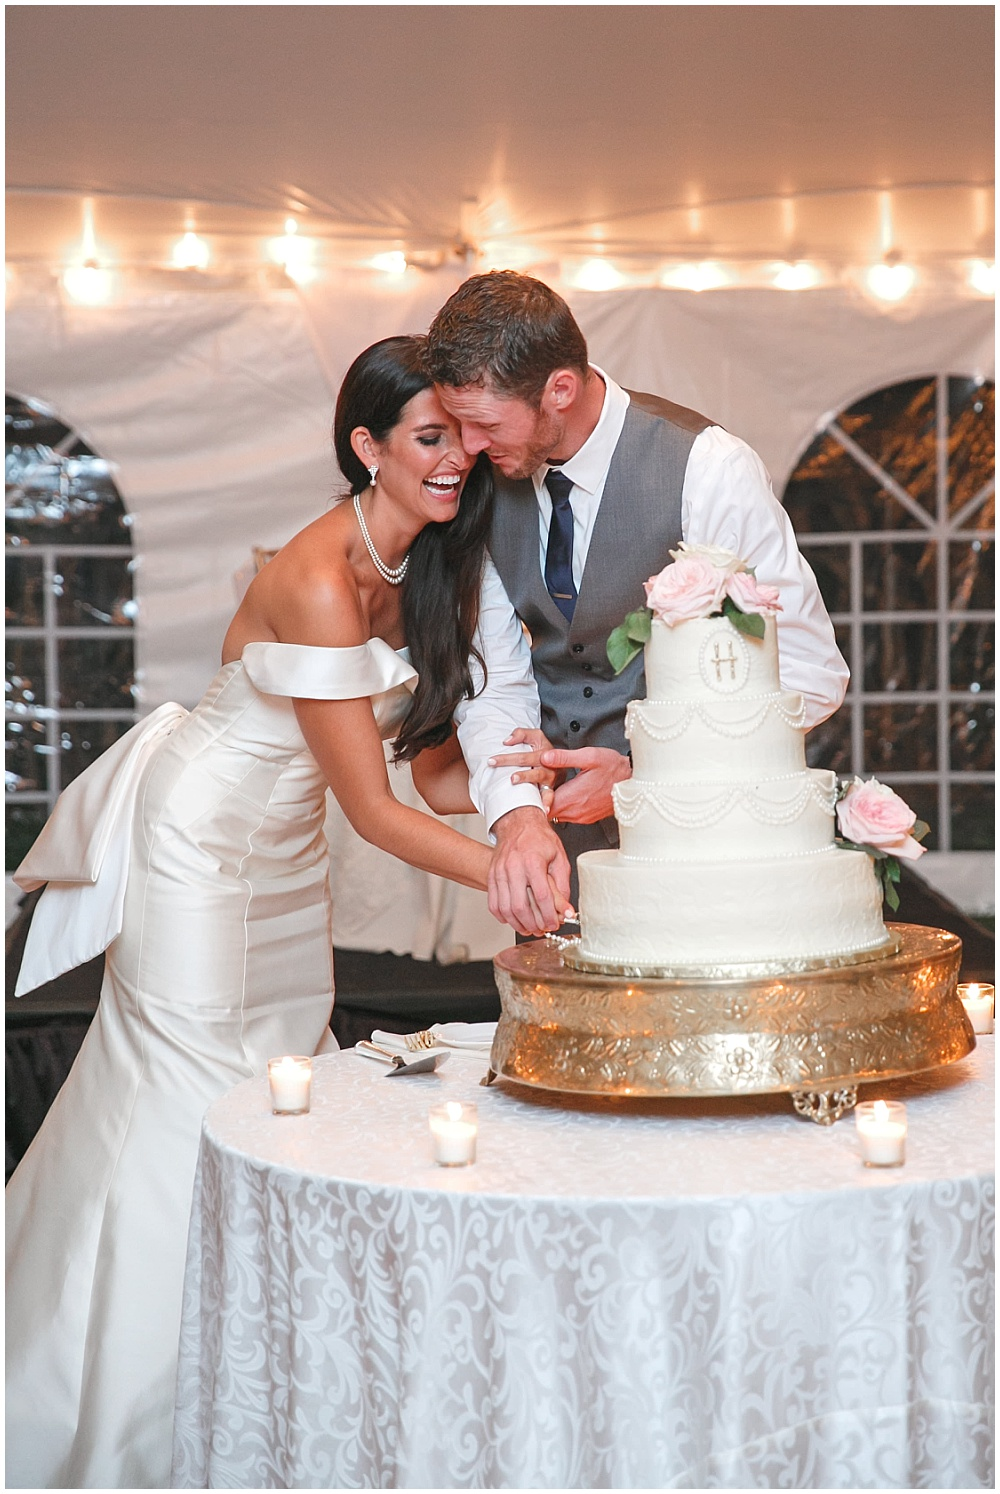 Bride and Groom cake cutting | Family Farm wedding by SB Childs Photography & Jessica Dum Wedding Coordination